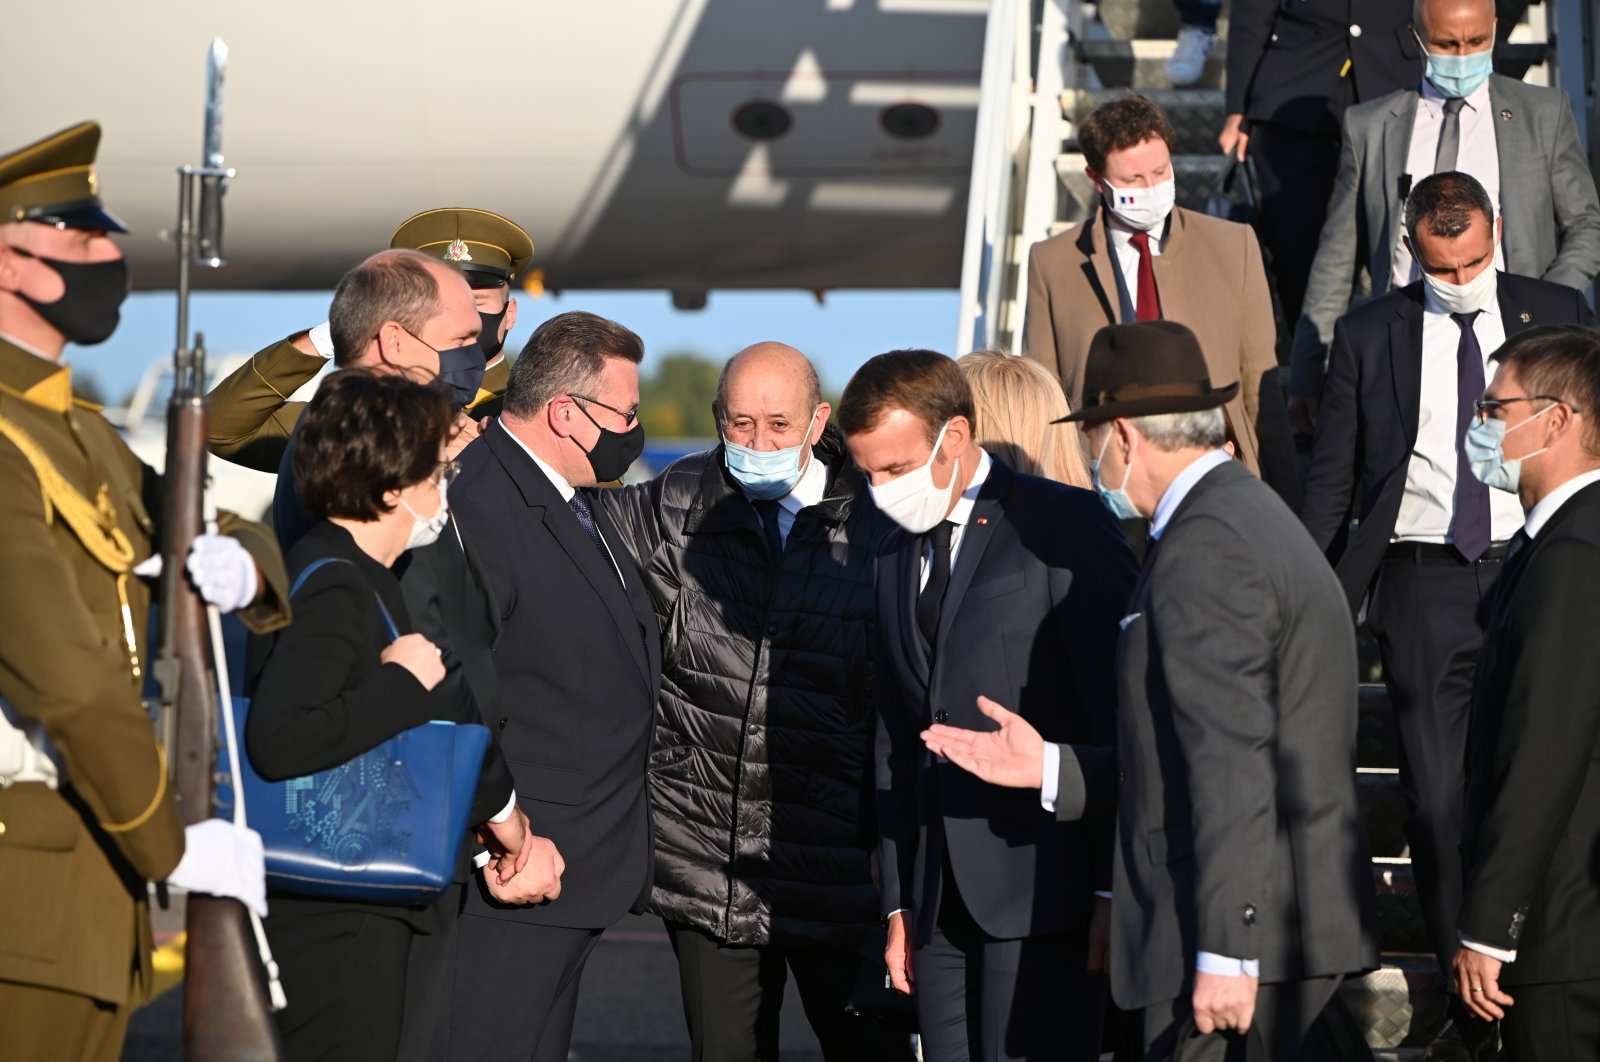 Lithuanian Foreign Minister Linas Linkevicius welcomes French President Emmanuel Macron and Foreign Affairs Minister Jean-Yves Le Drian upon their arrival in Vilnius, Lithuania, Sept. 28, 2020. (Lithuanian Foreign Affairs Ministry Photo via Reuters)